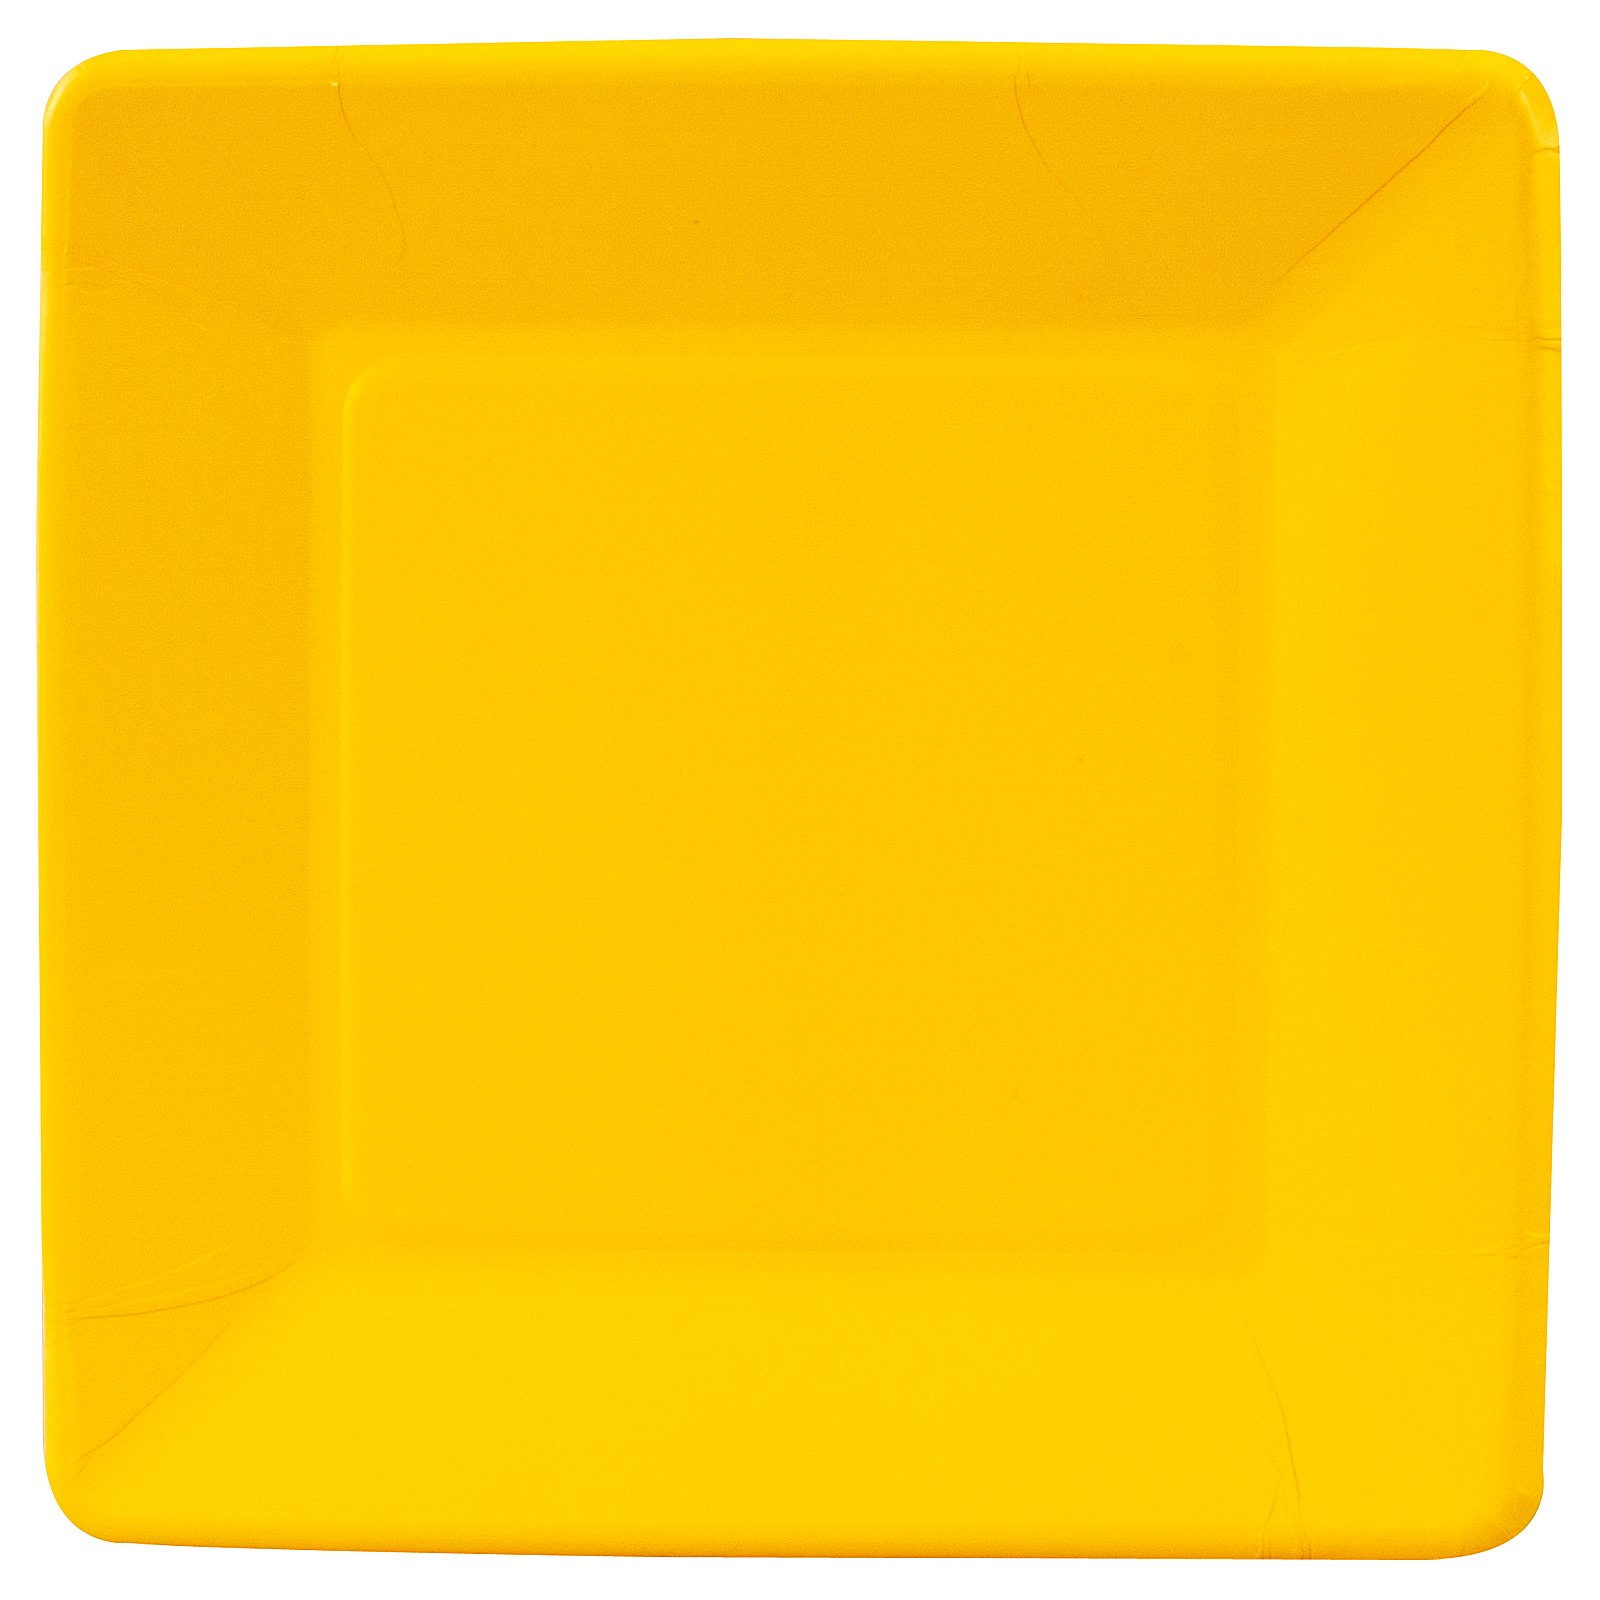 School Bus Yellow (Yellow) Square Dinner Plates (18 count)